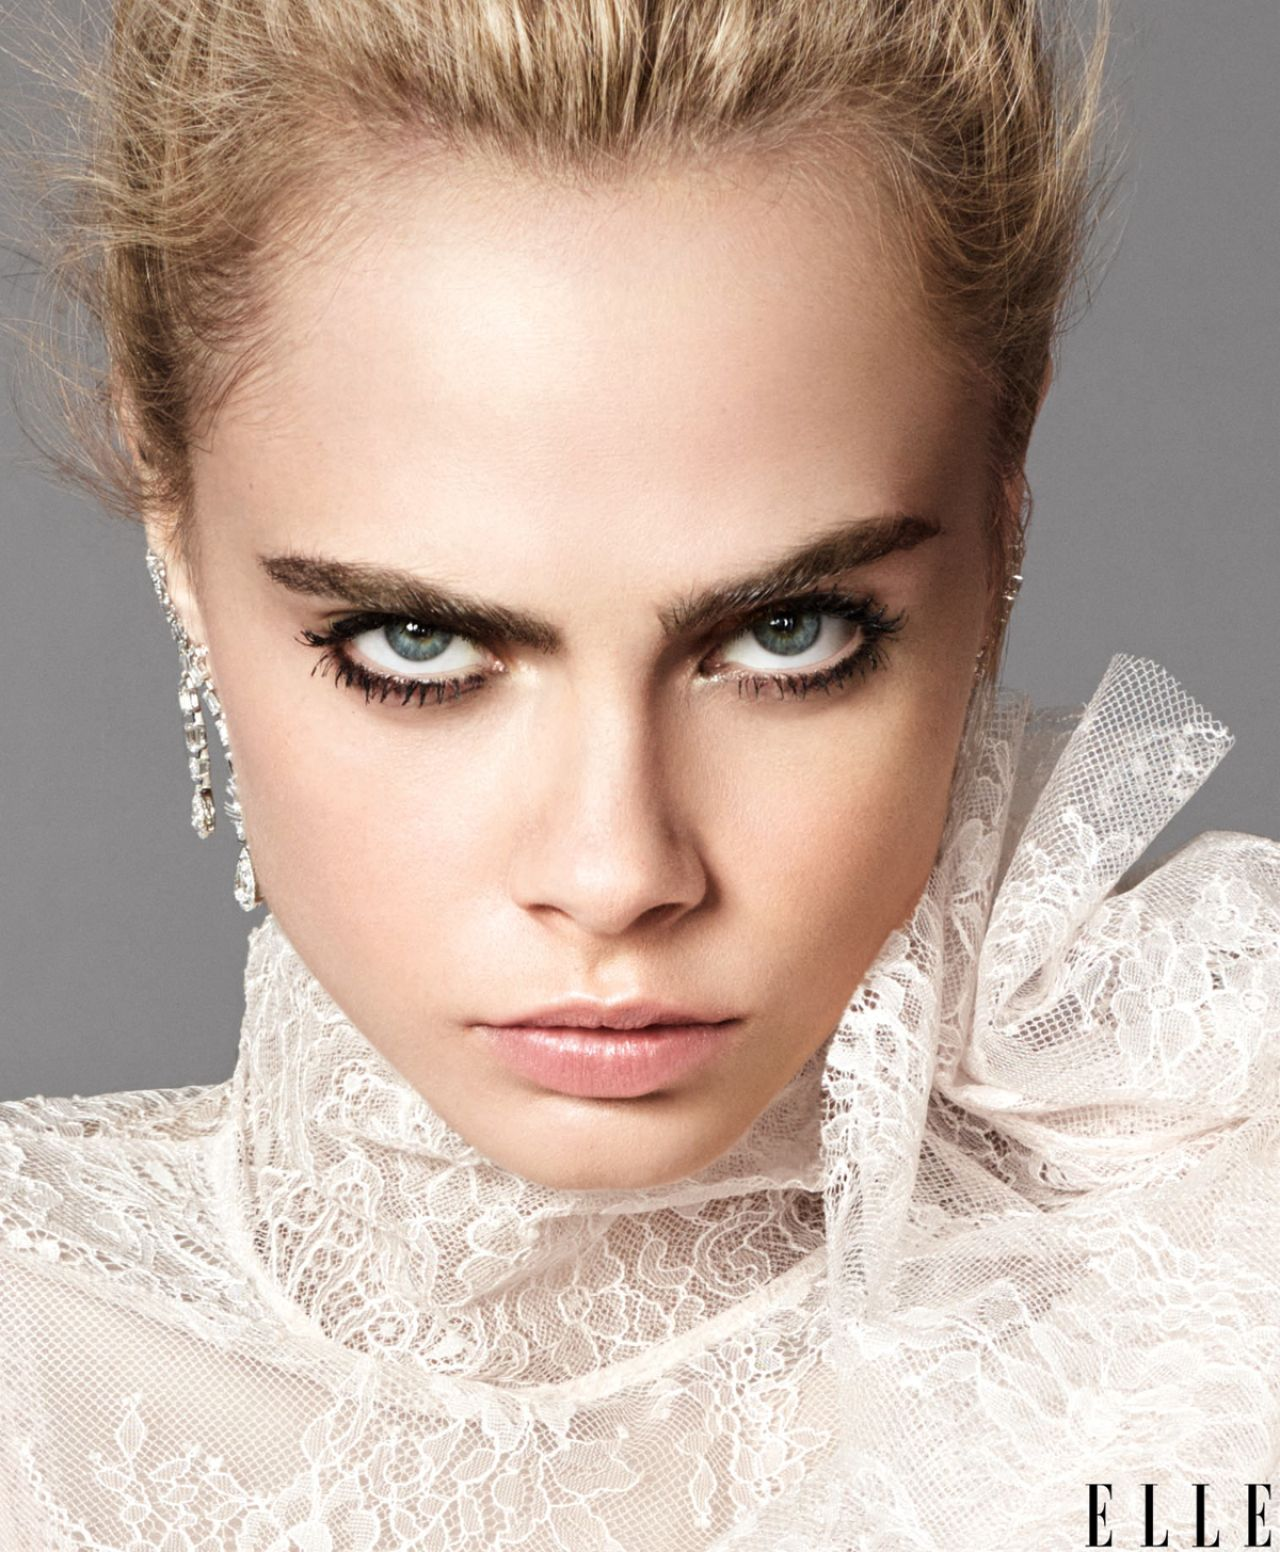 Cara Delevingne - Elle US September 2016 Cover and Photos